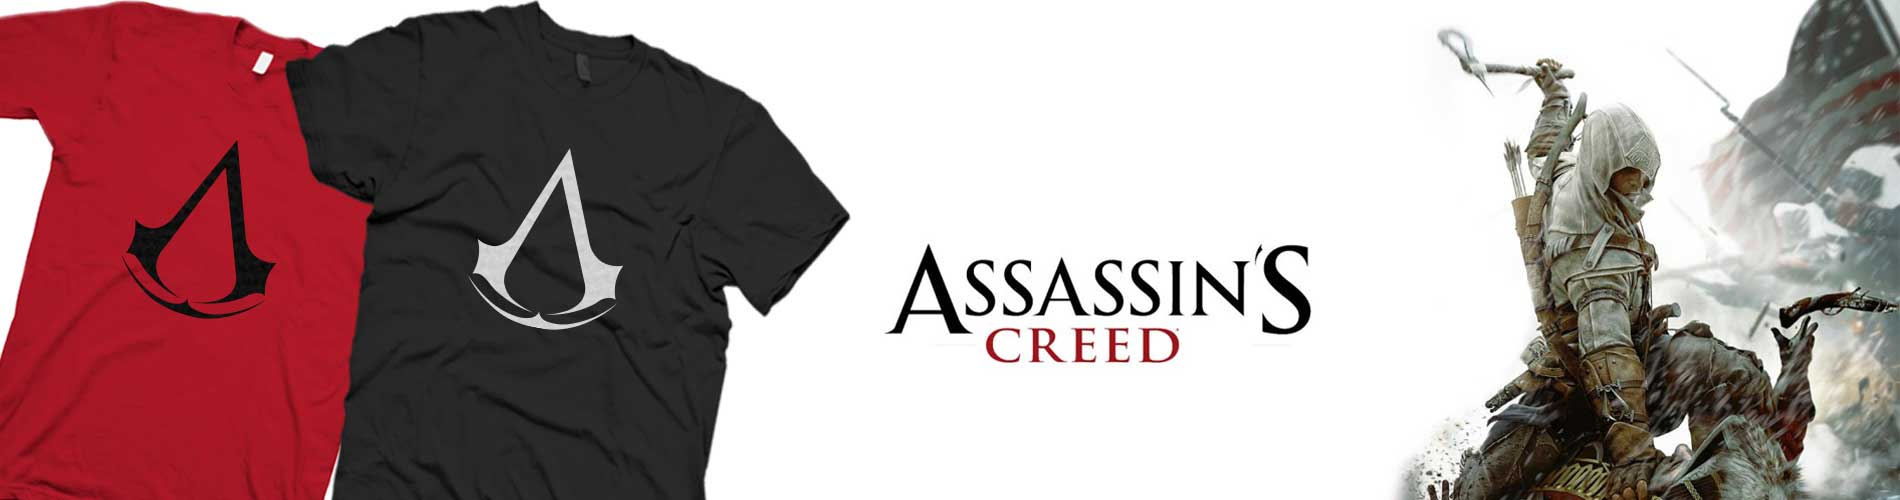 Assassins Creed Logo Shirt Banner